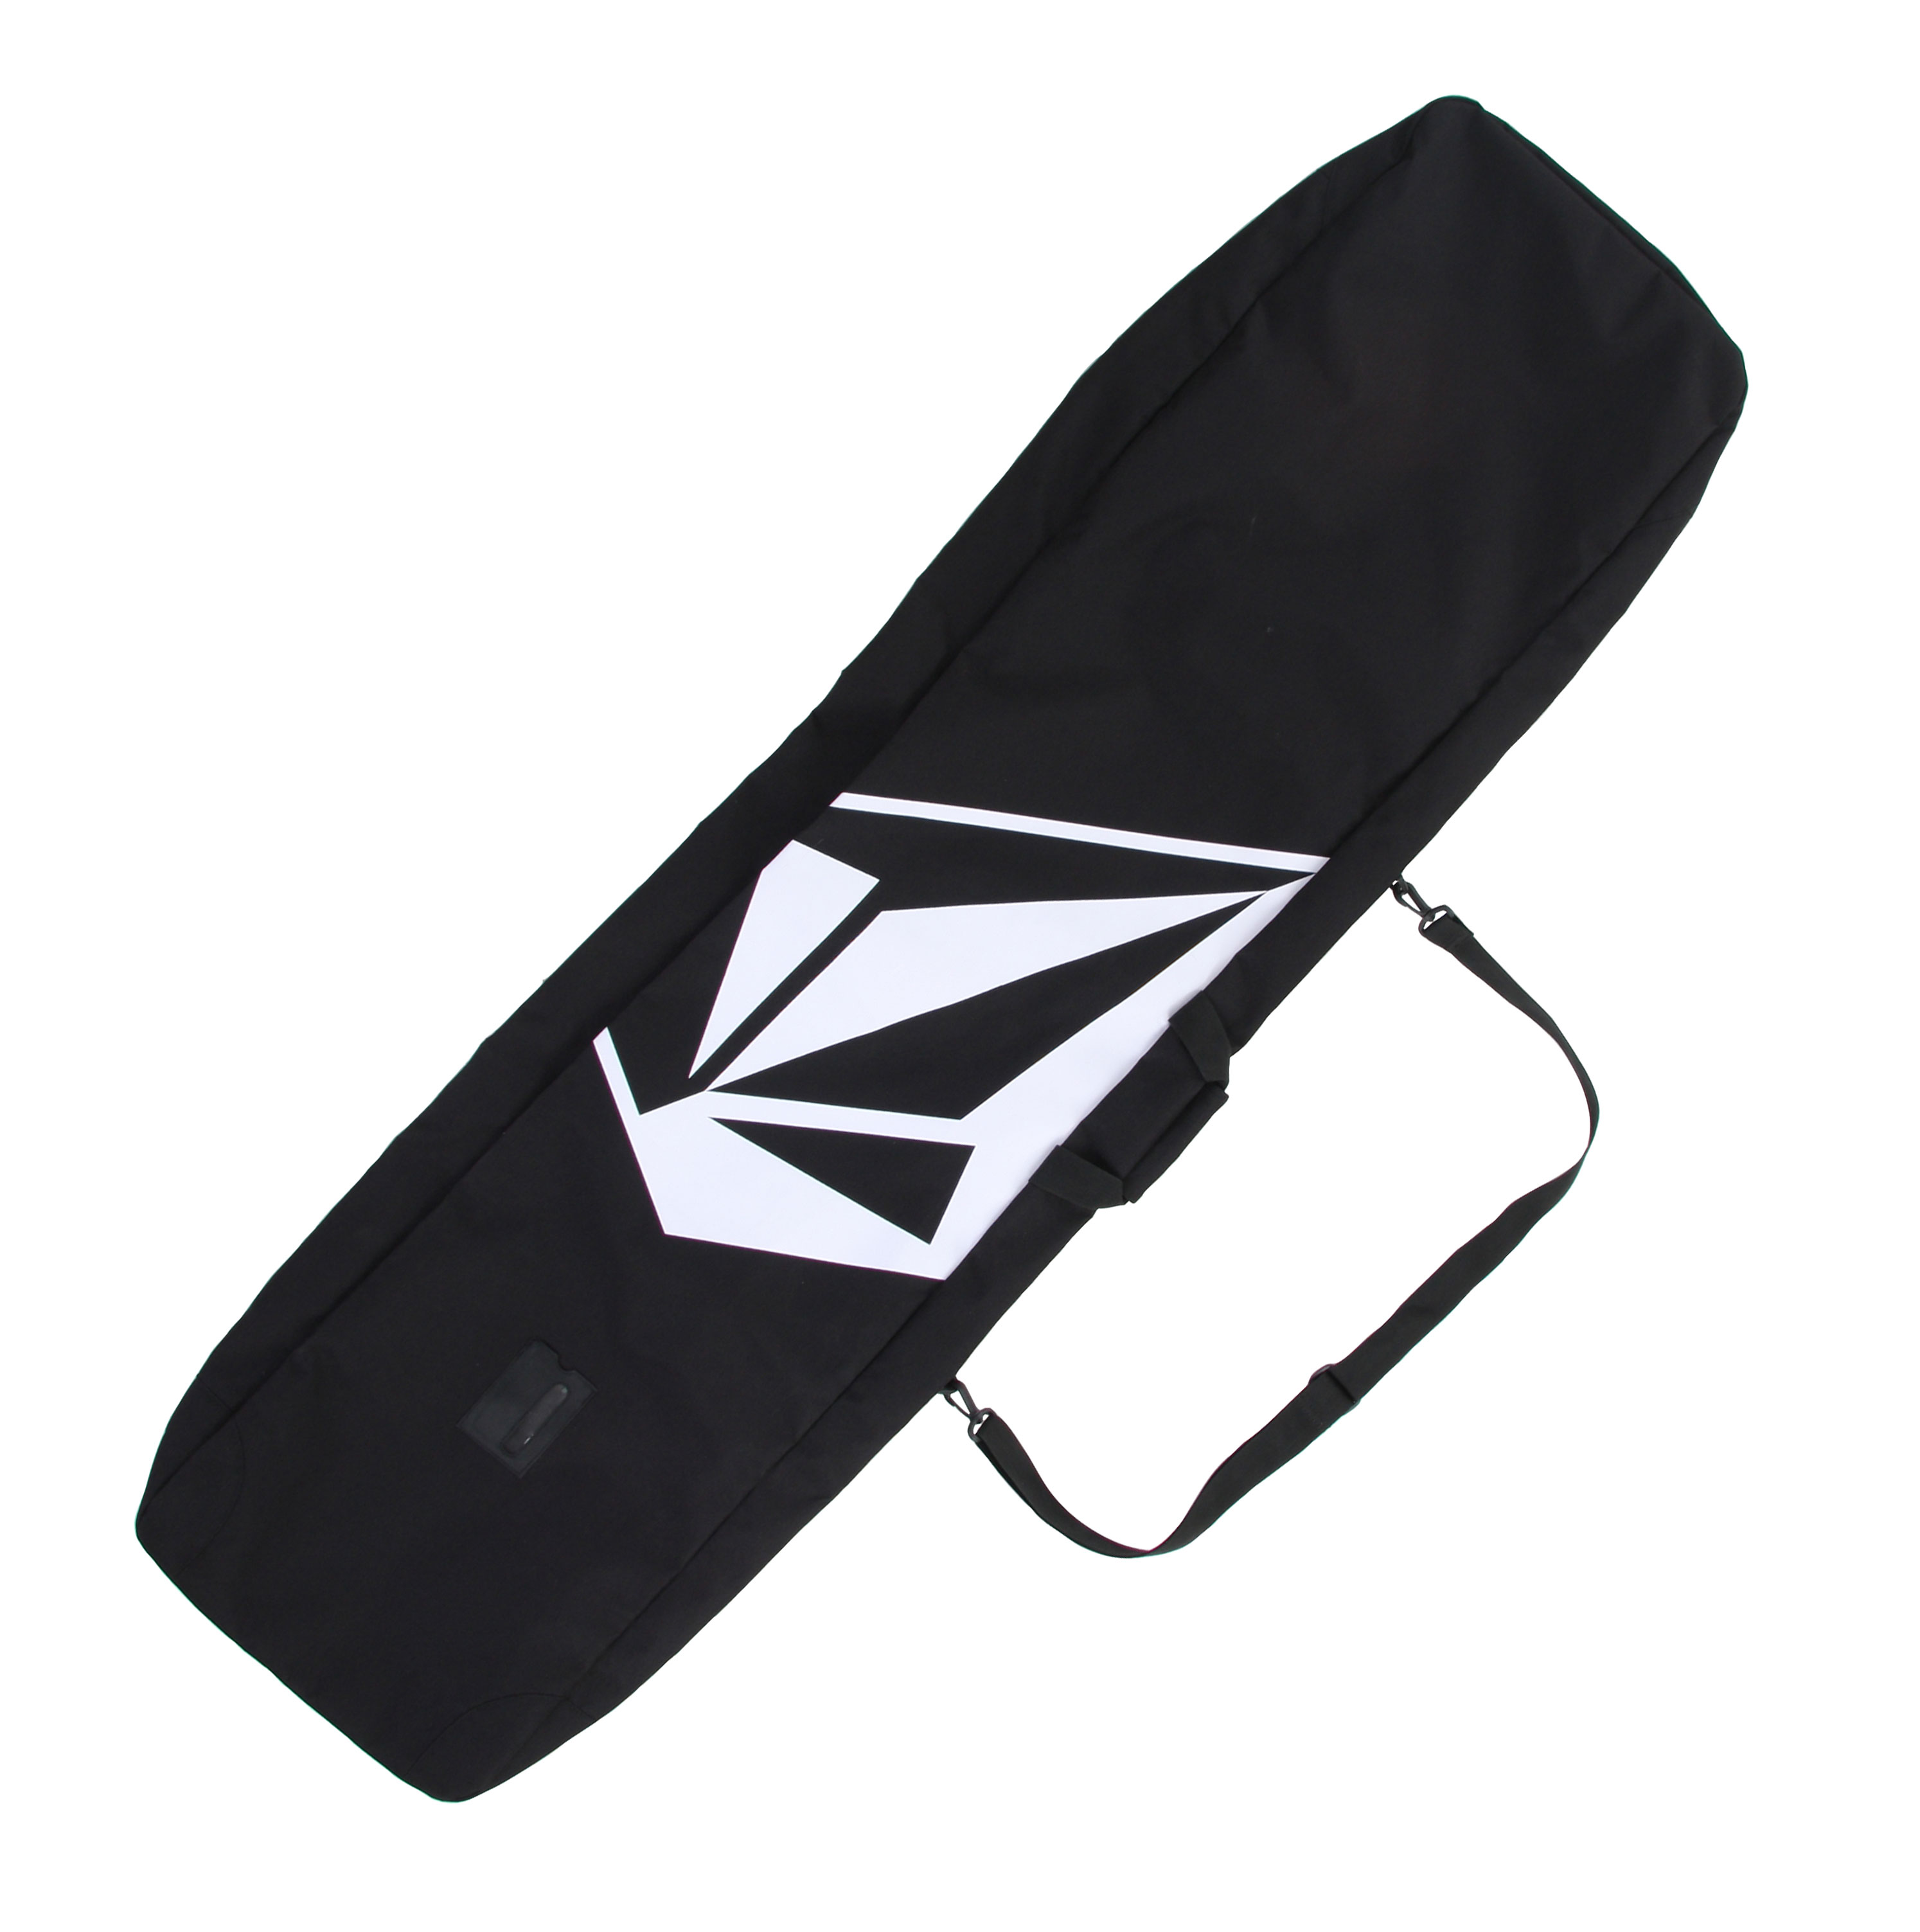 Snowboard You'll find no complaints with Volcom's SMU Snowboard Bag 165. With its spacious interior, you'll find room for your board, boots, bindings and a set of clothes. True to the Volcom name, the Volcom Stone logo is blasted on the bag to ensure that you're carrying your gear in style. Consider this the snowboard bag that ever snowboarder needs to have. Whether you opt to use the removable shoulder strap or not, enjoy carrying your board back to your car in half the time with very little effort.Key Features of the Volcom SMU Snowboard Bag: Heavy-duty Secure Zipper Closure Top Padded Webbing Handle Removable Shoulder Strap Outer ID Pocket/Window - $39.95